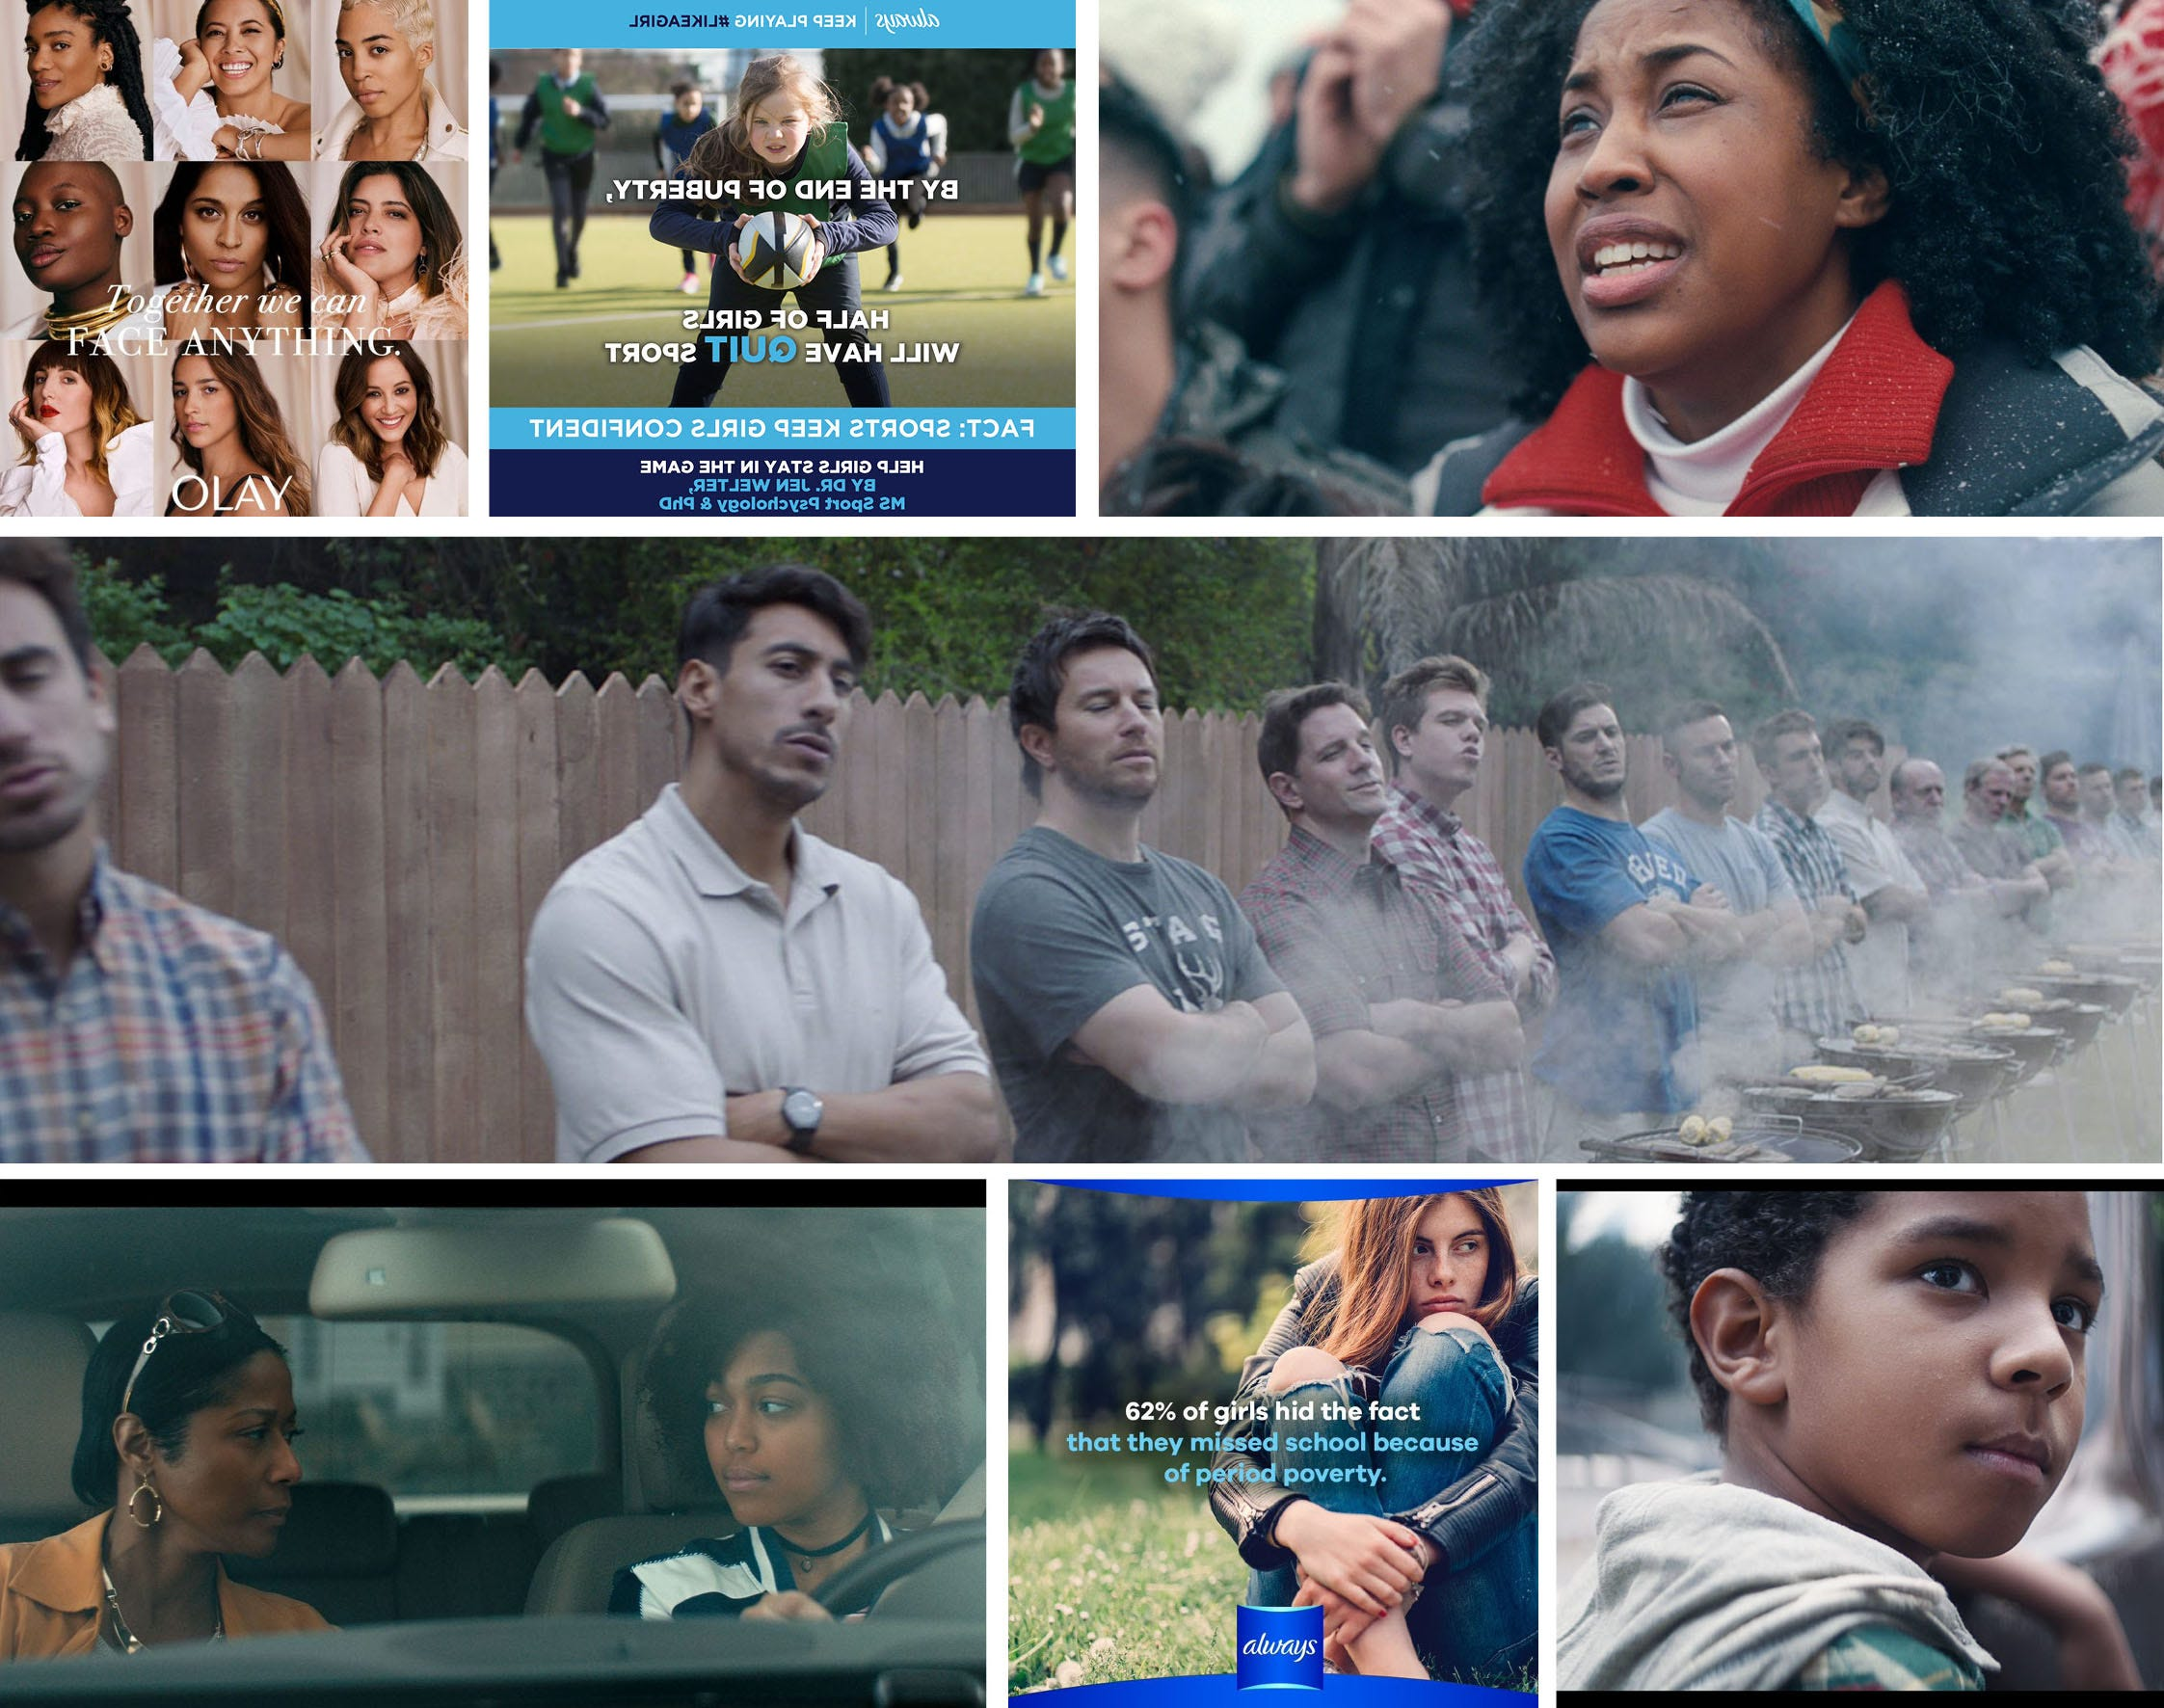 Consumer giant's ads are getting political. Will that draw backlash?